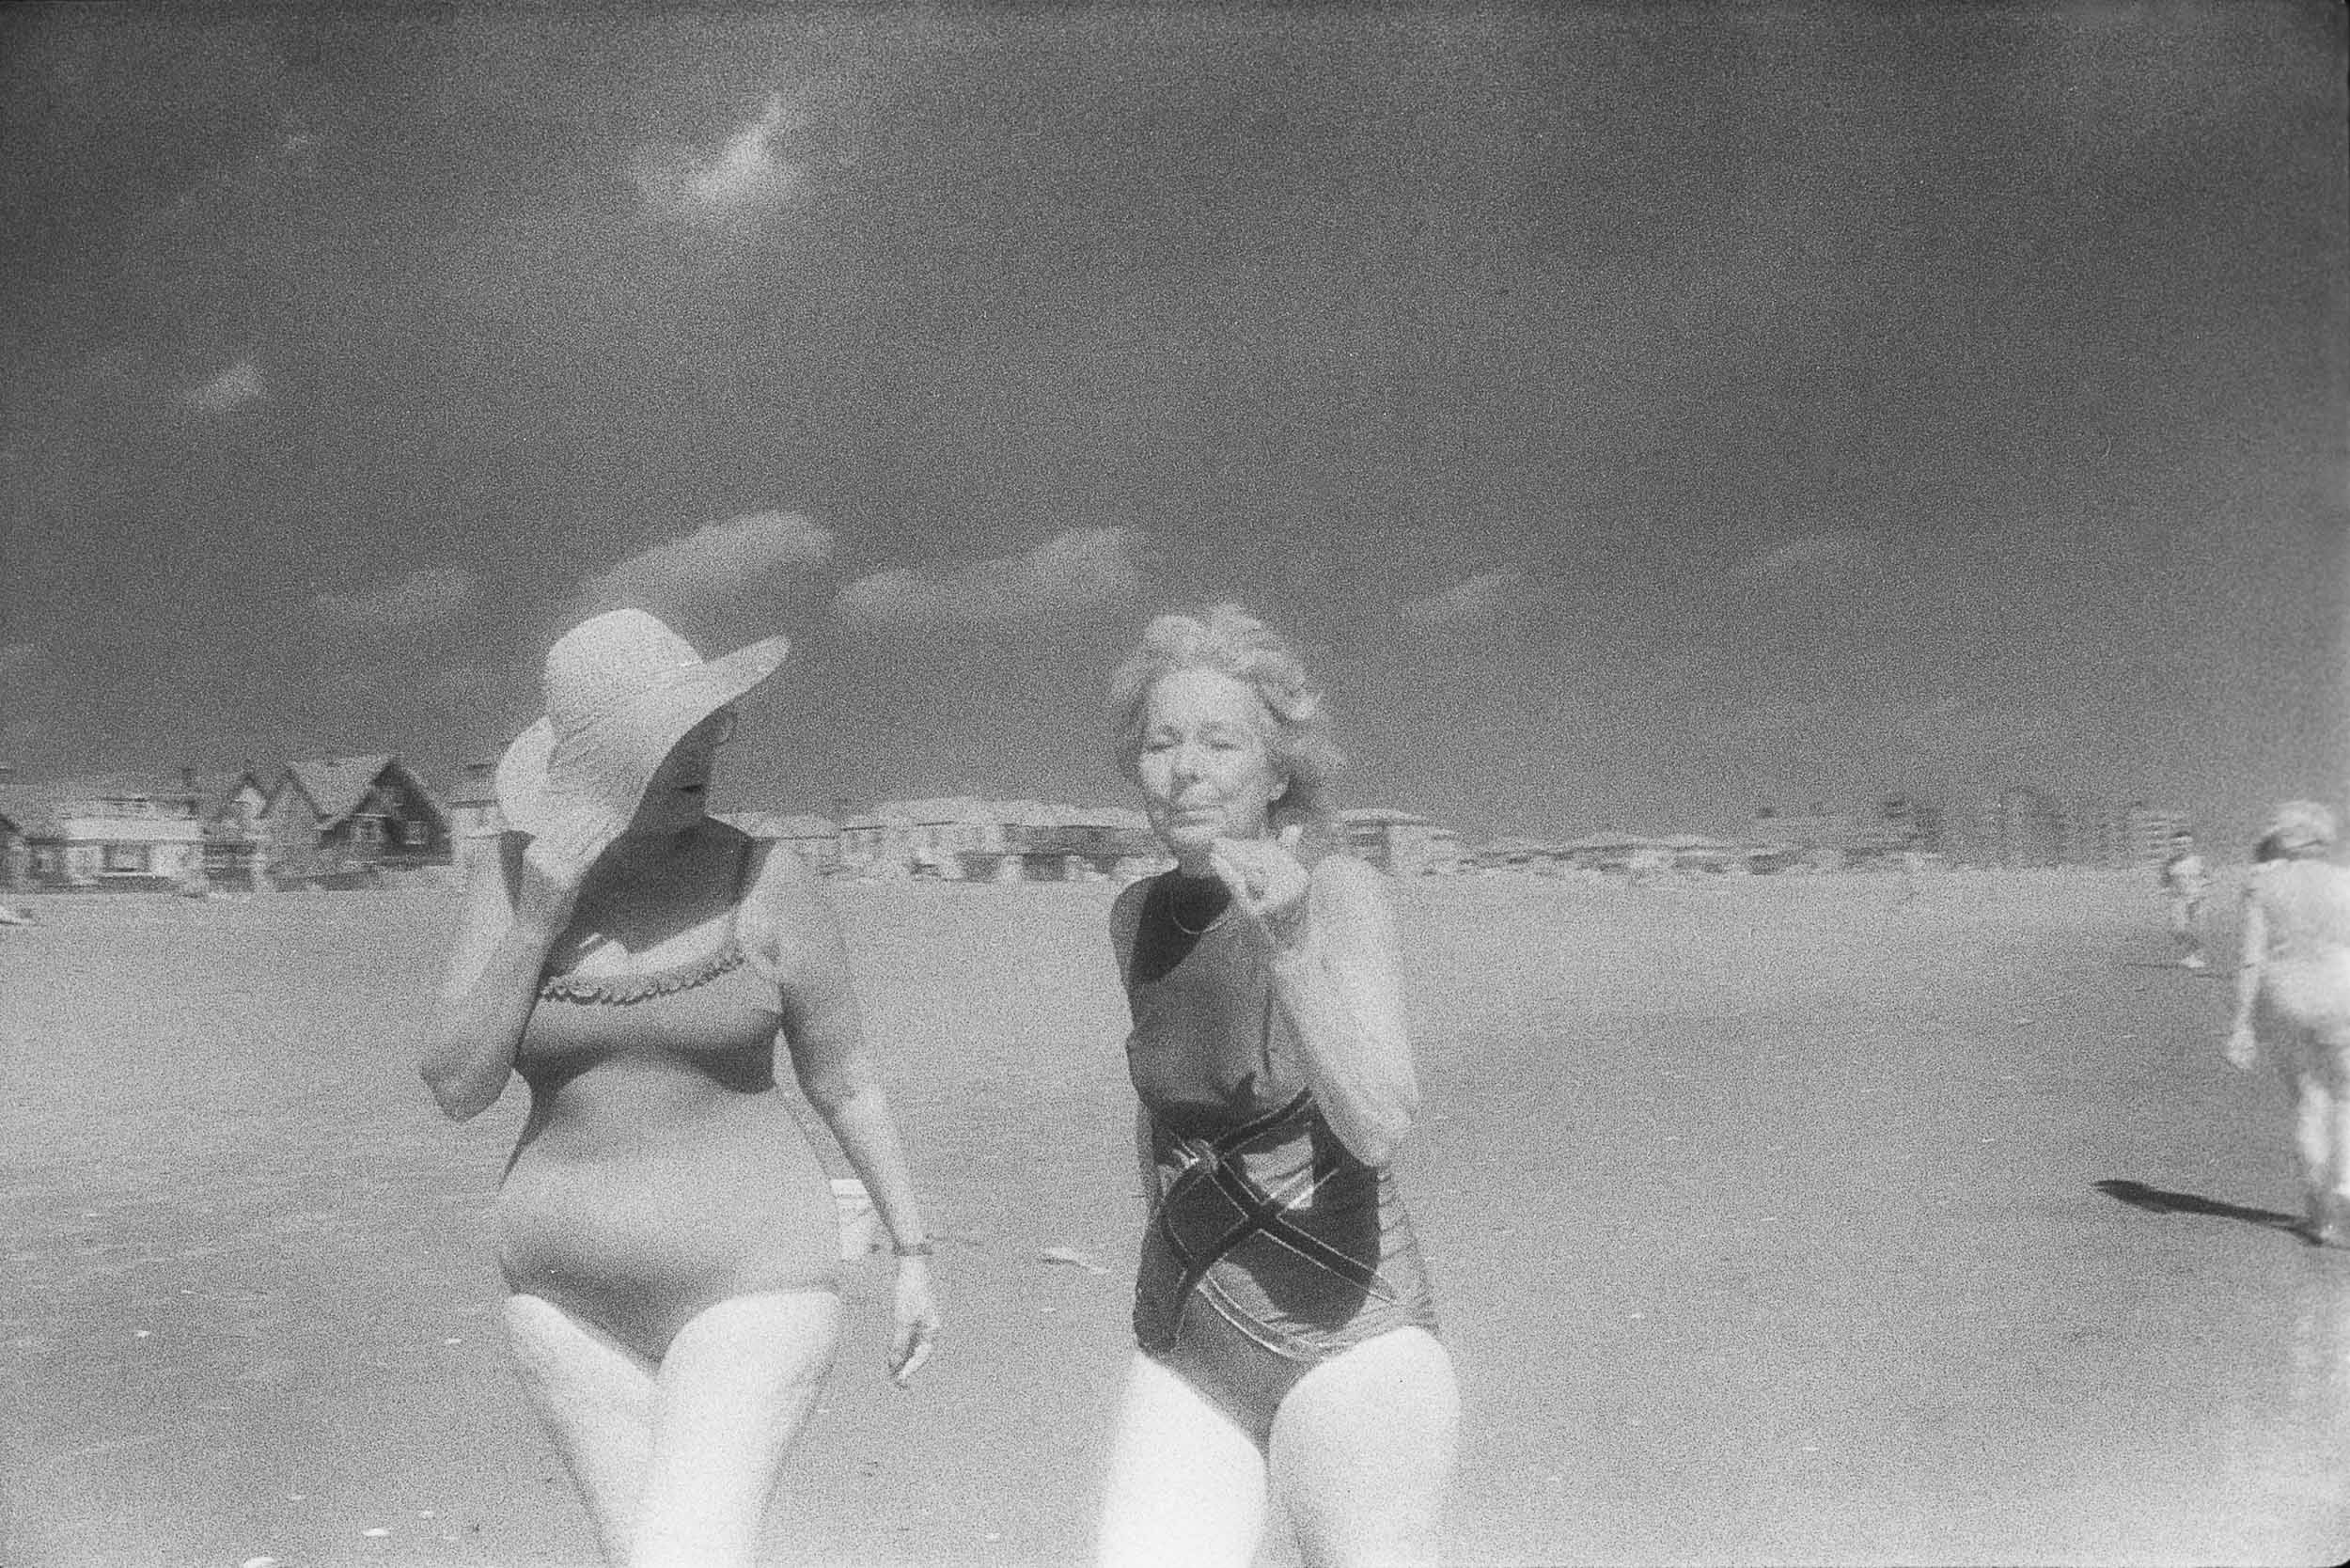 Barbara Alper- Photo of women walking and talking together on Rockaway Beach NYC